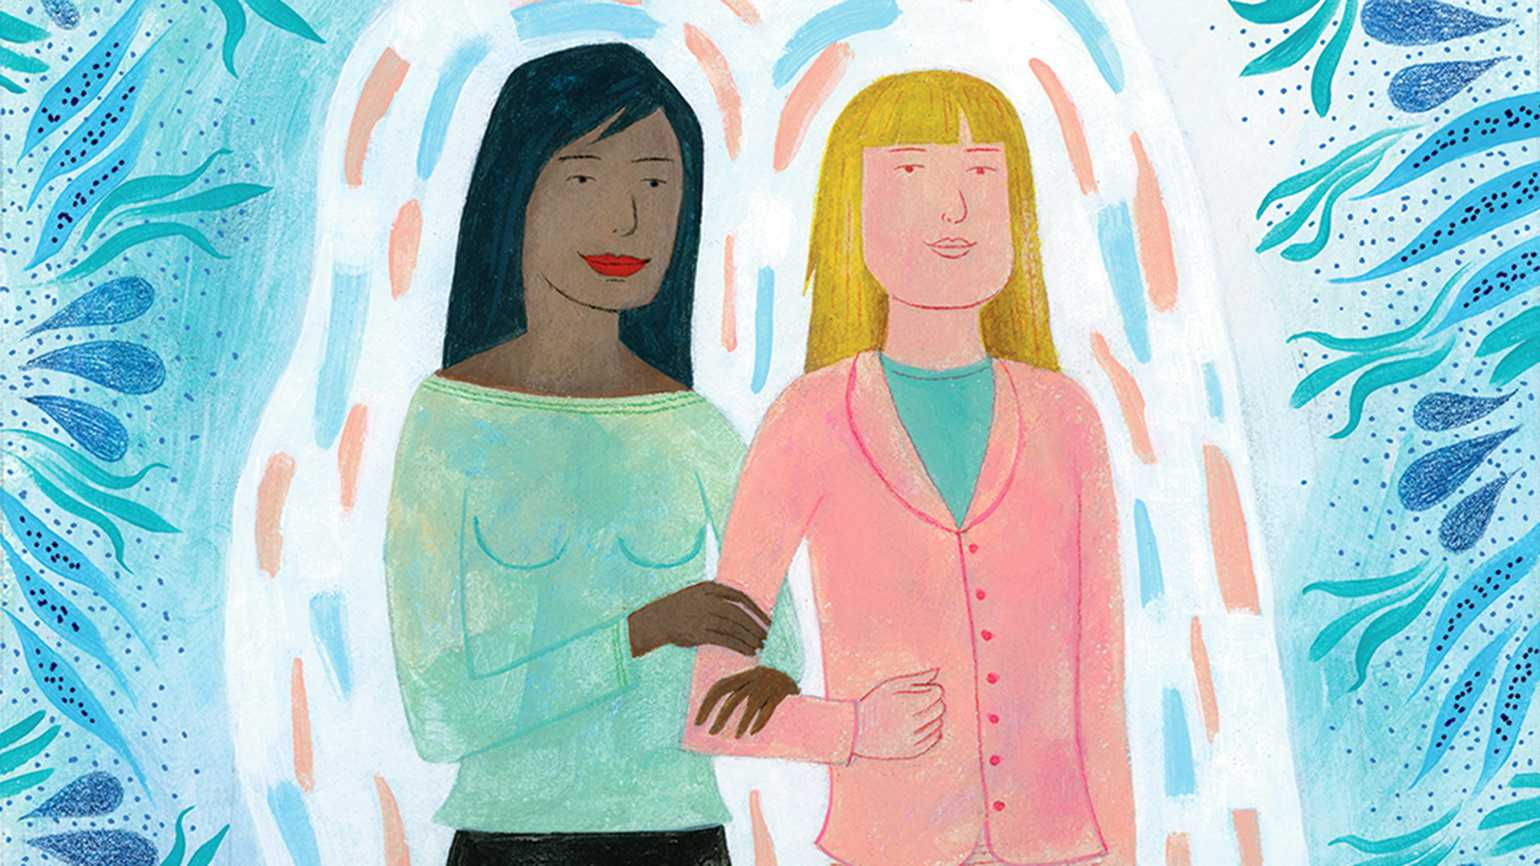 An artist's rendering of a pair of women who are soul friends